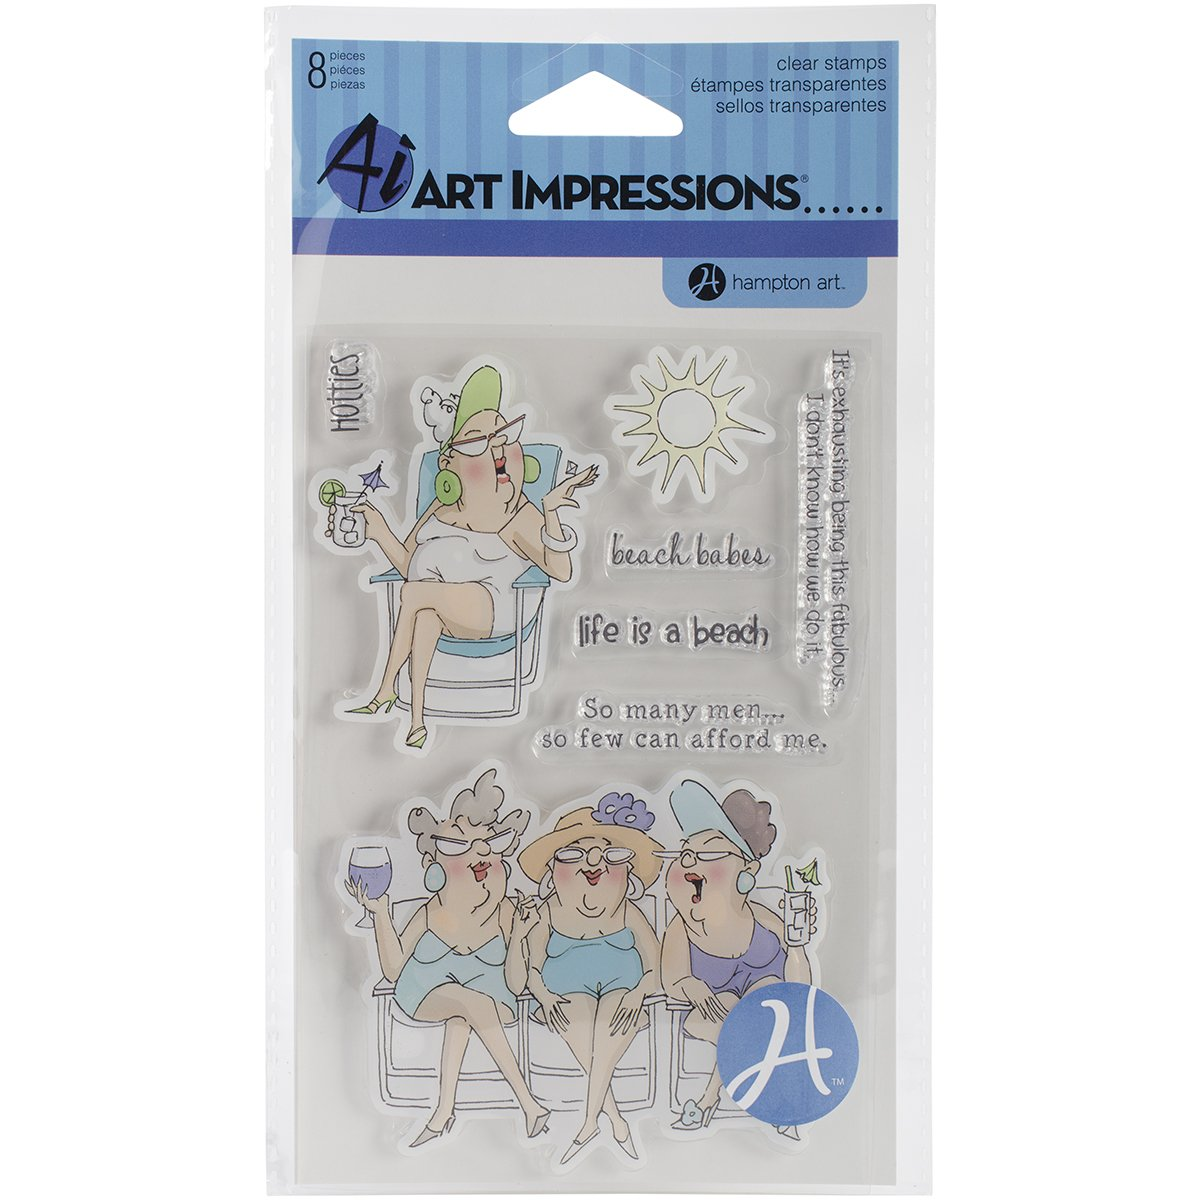 Hampton Art Art Impressions Clear Stamps, 4 by 8-Inch, More Candles SC0653